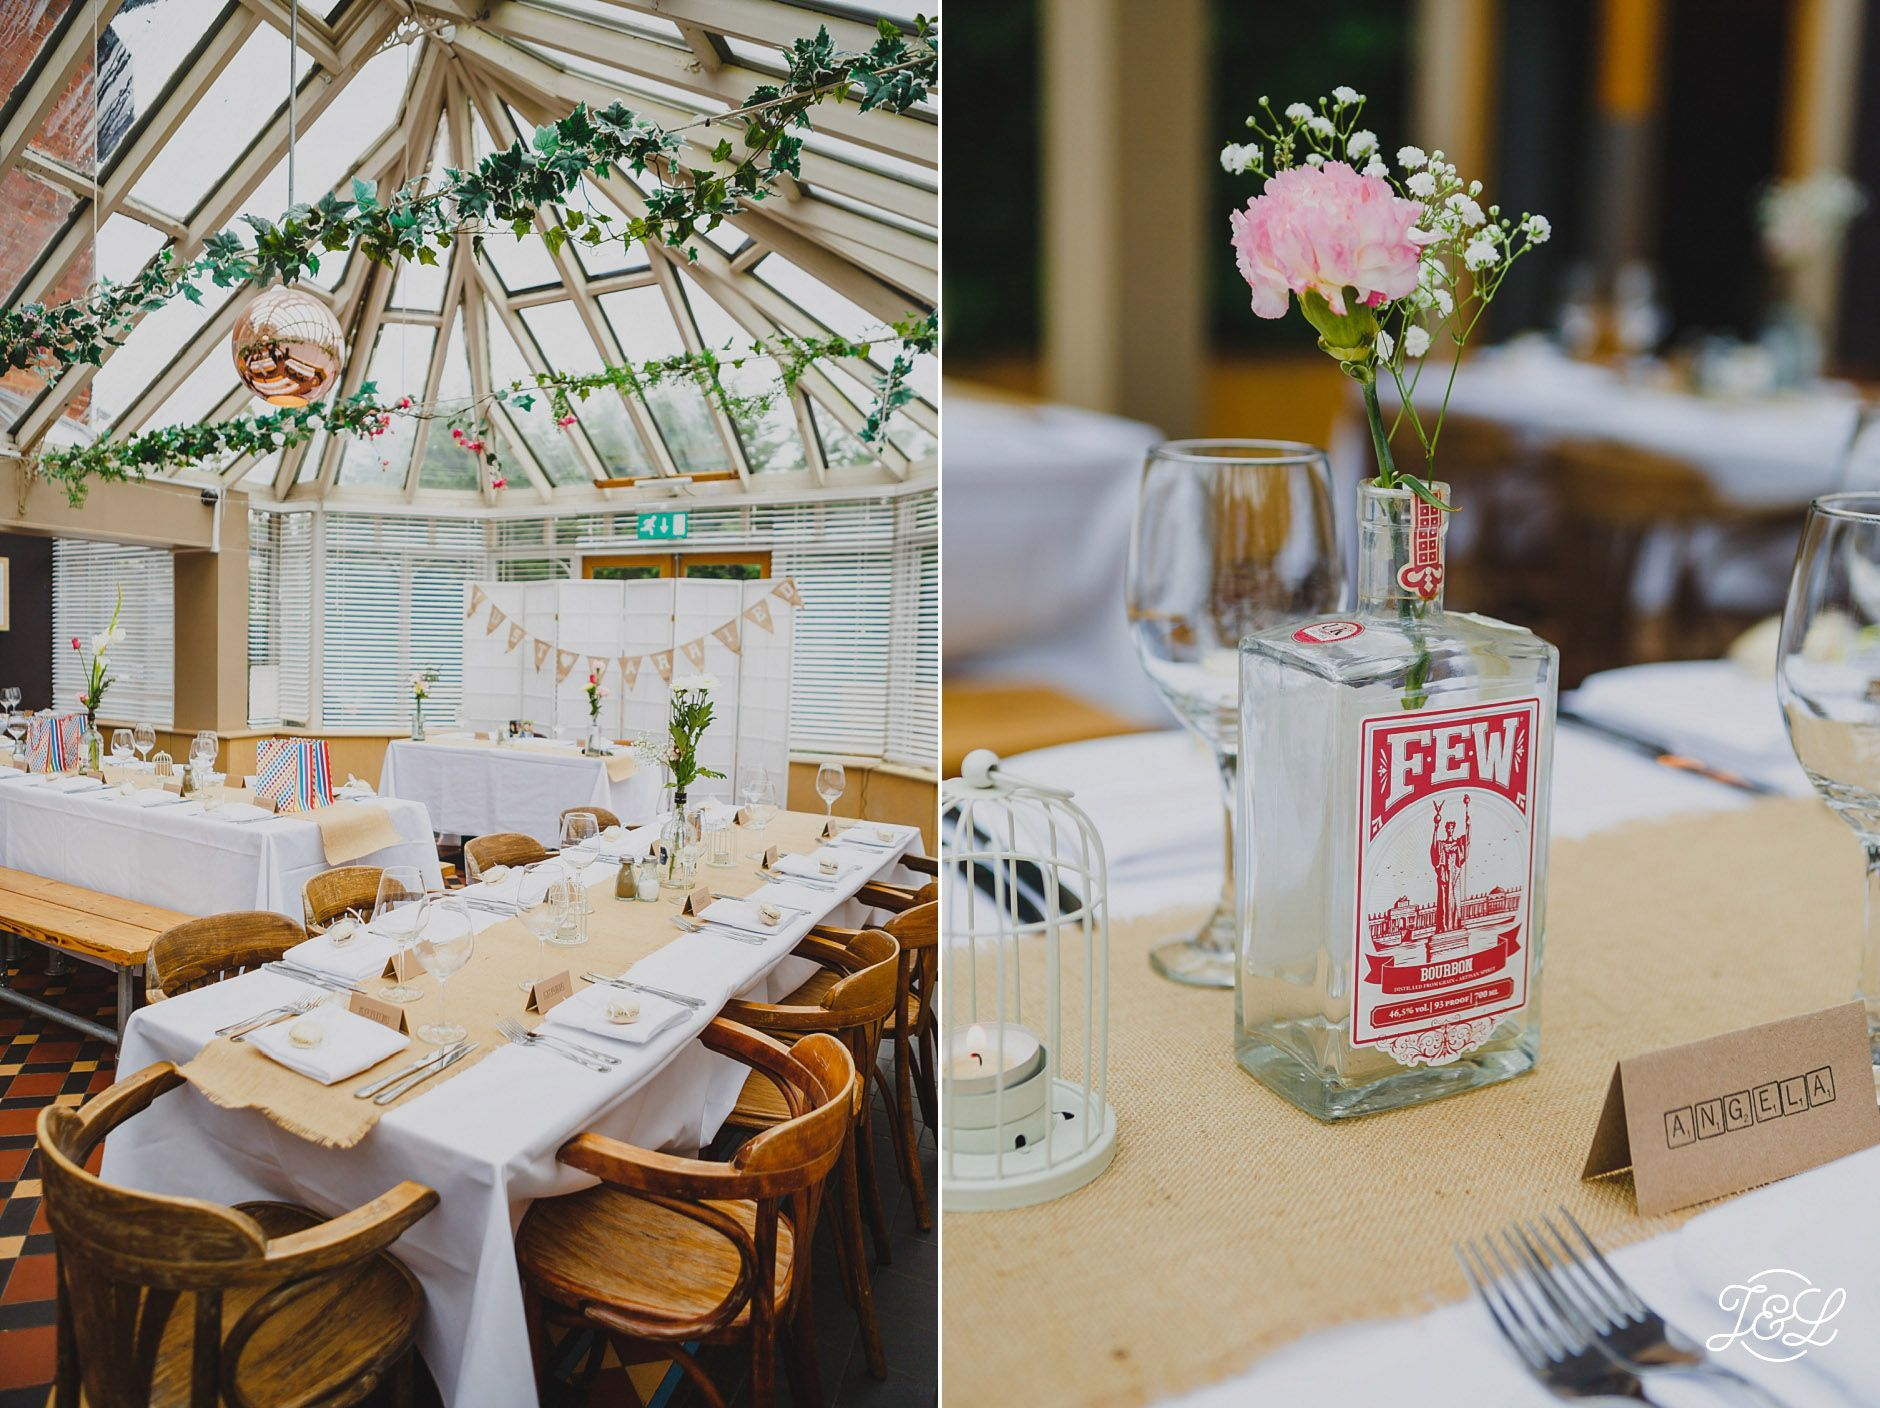 Wedding Decorations Ideas Pinterest With Images Wedding Decorations